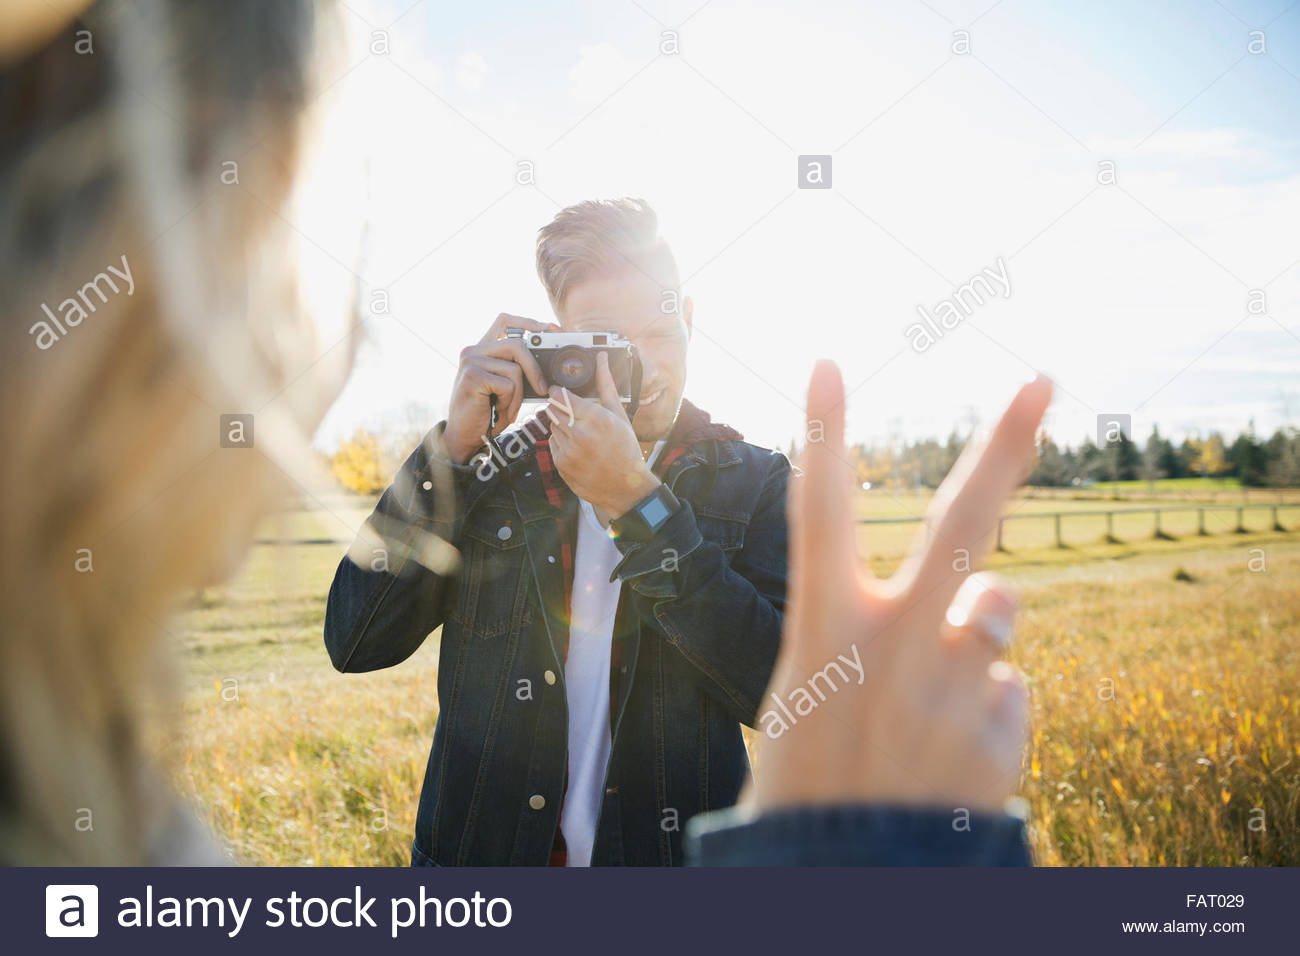 Young man photographing girlfriend gesturing peace sign - Stock Image